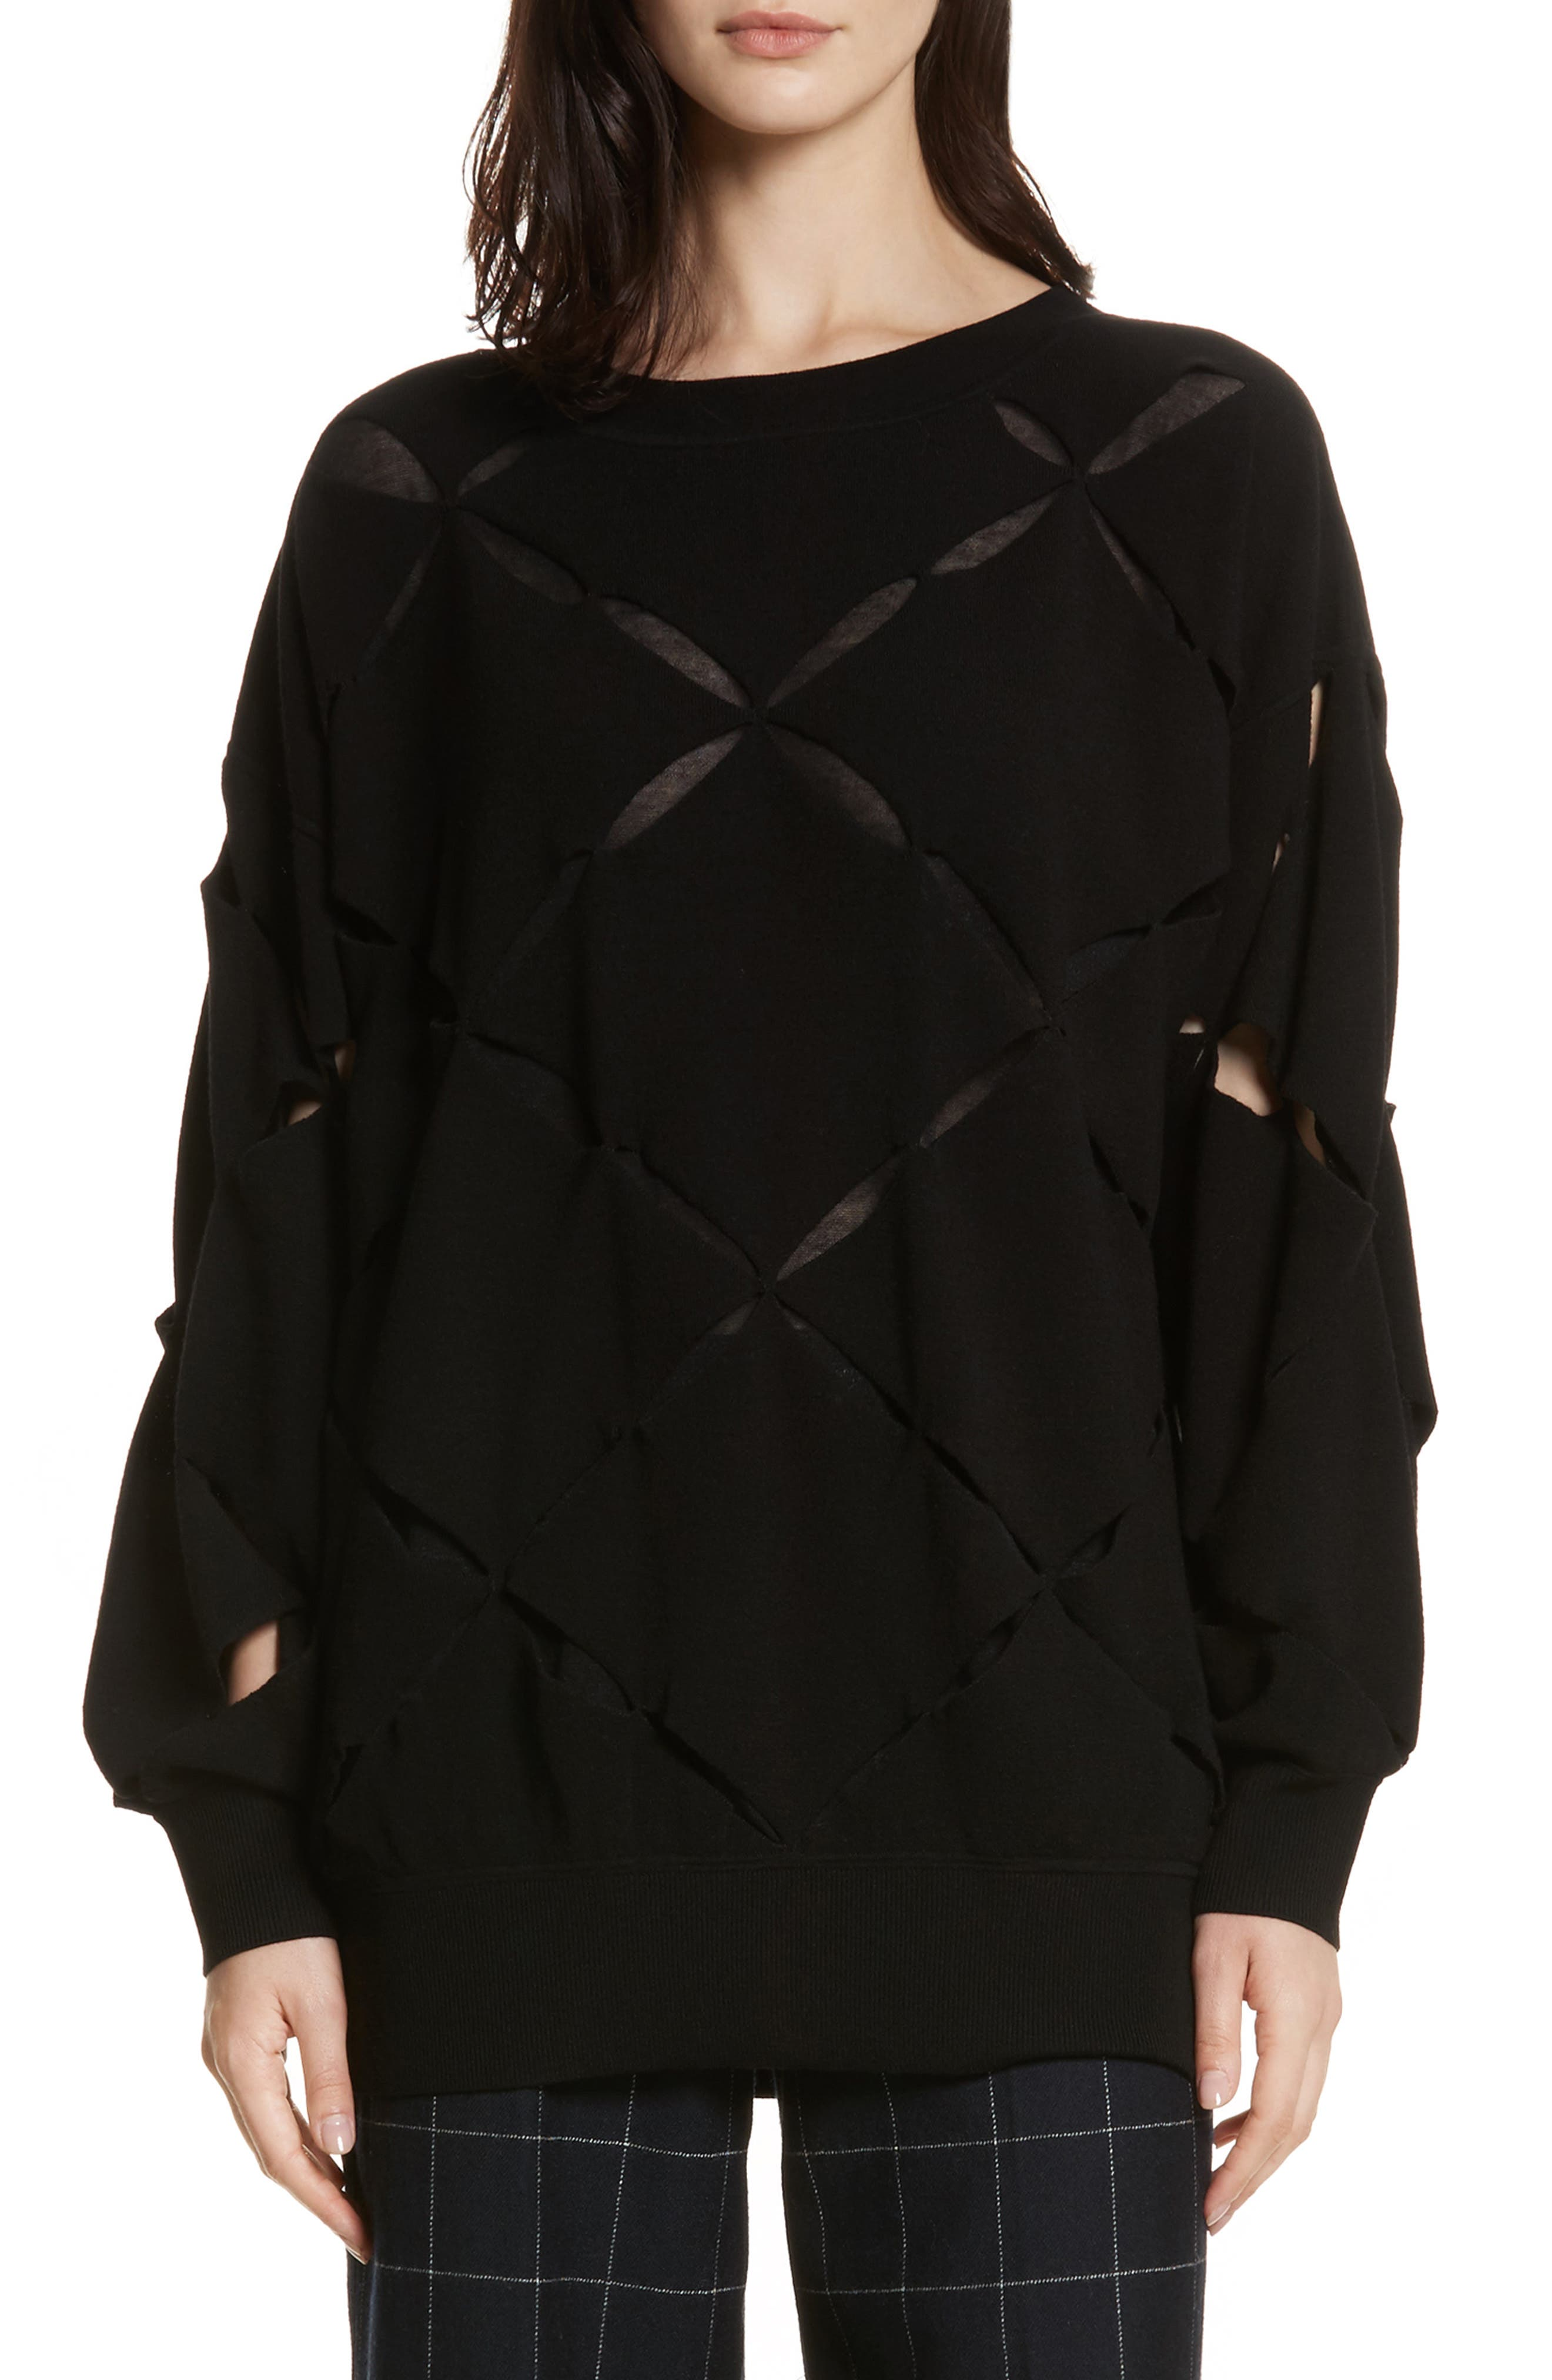 Roz Cutout Sweater,                         Main,                         color, 001